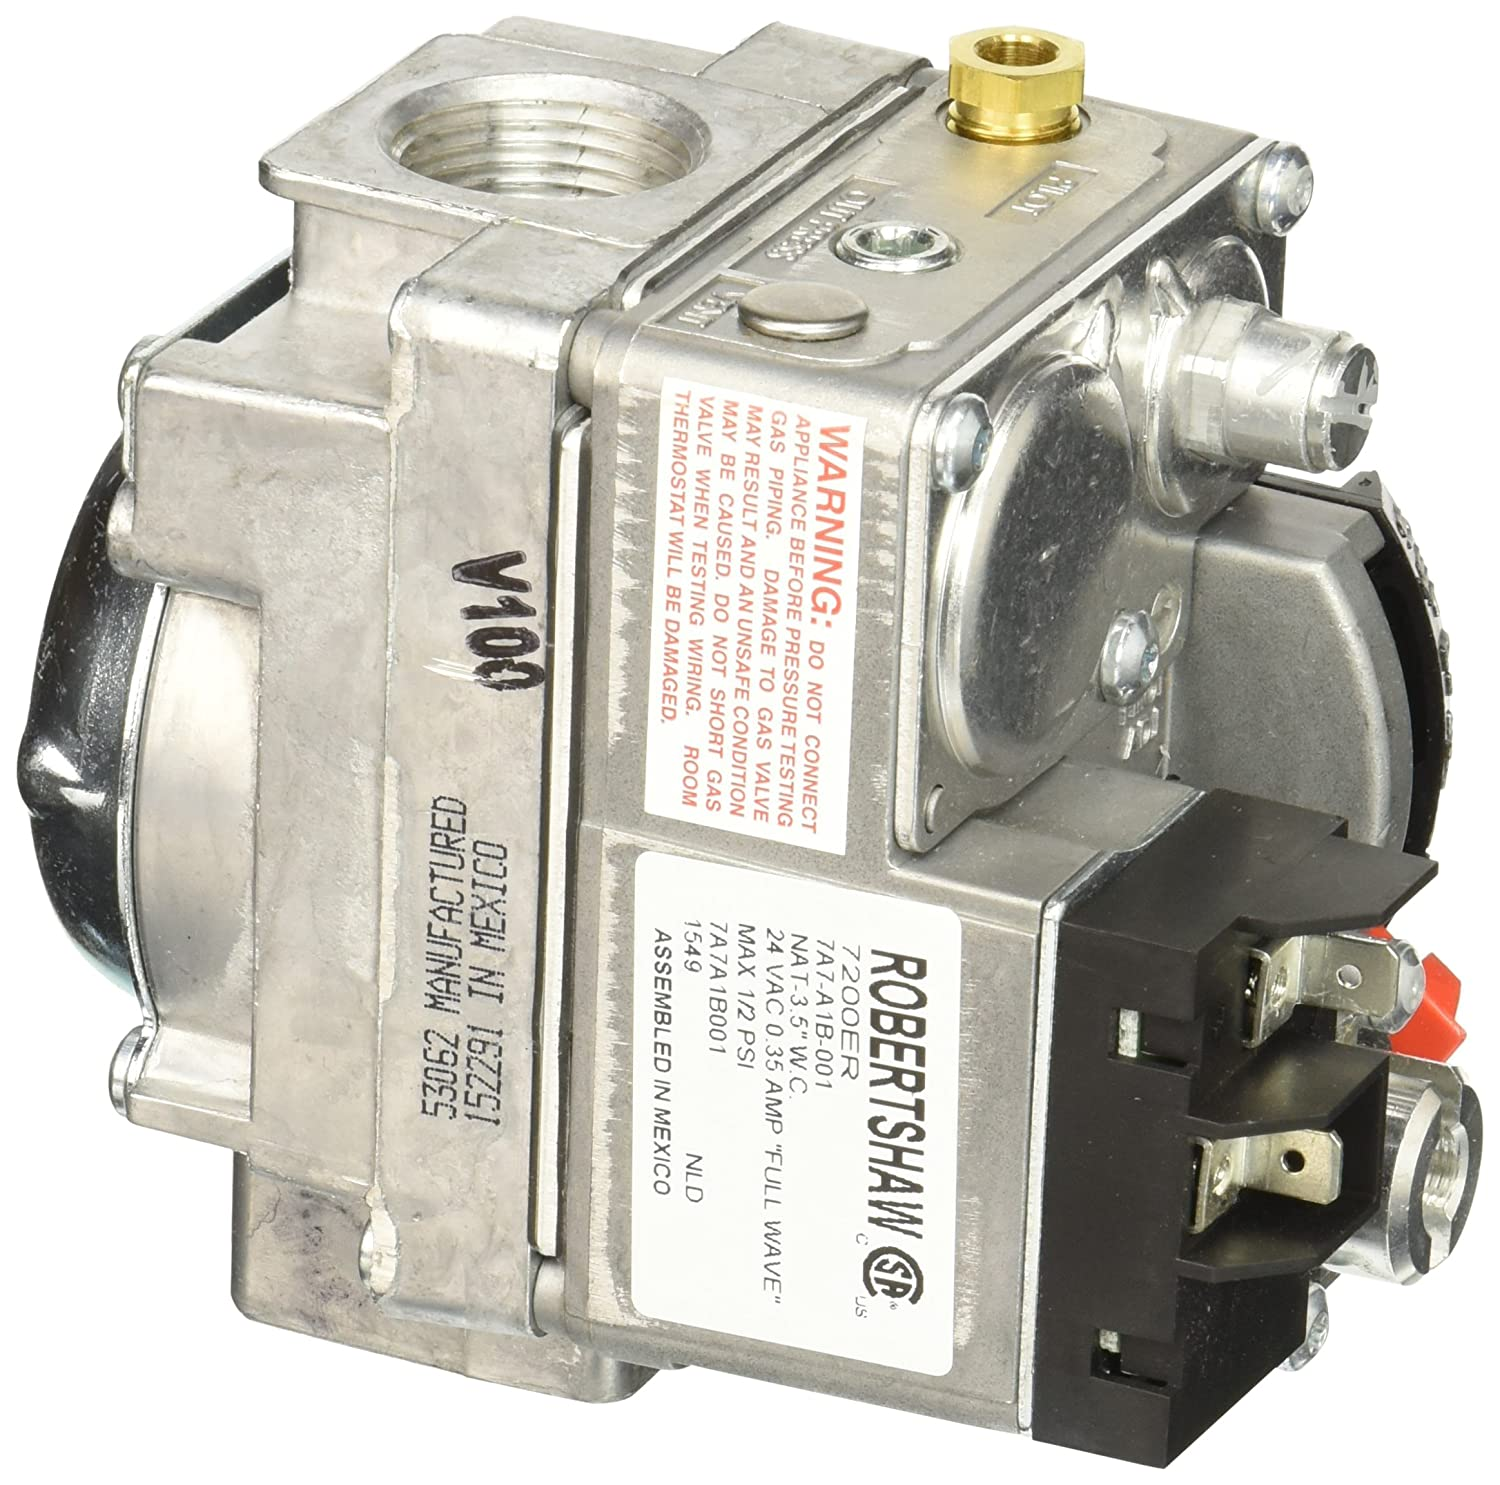 Robertshaw 720-400 Commercial Cooking Dual Gas Valve 24V ... on